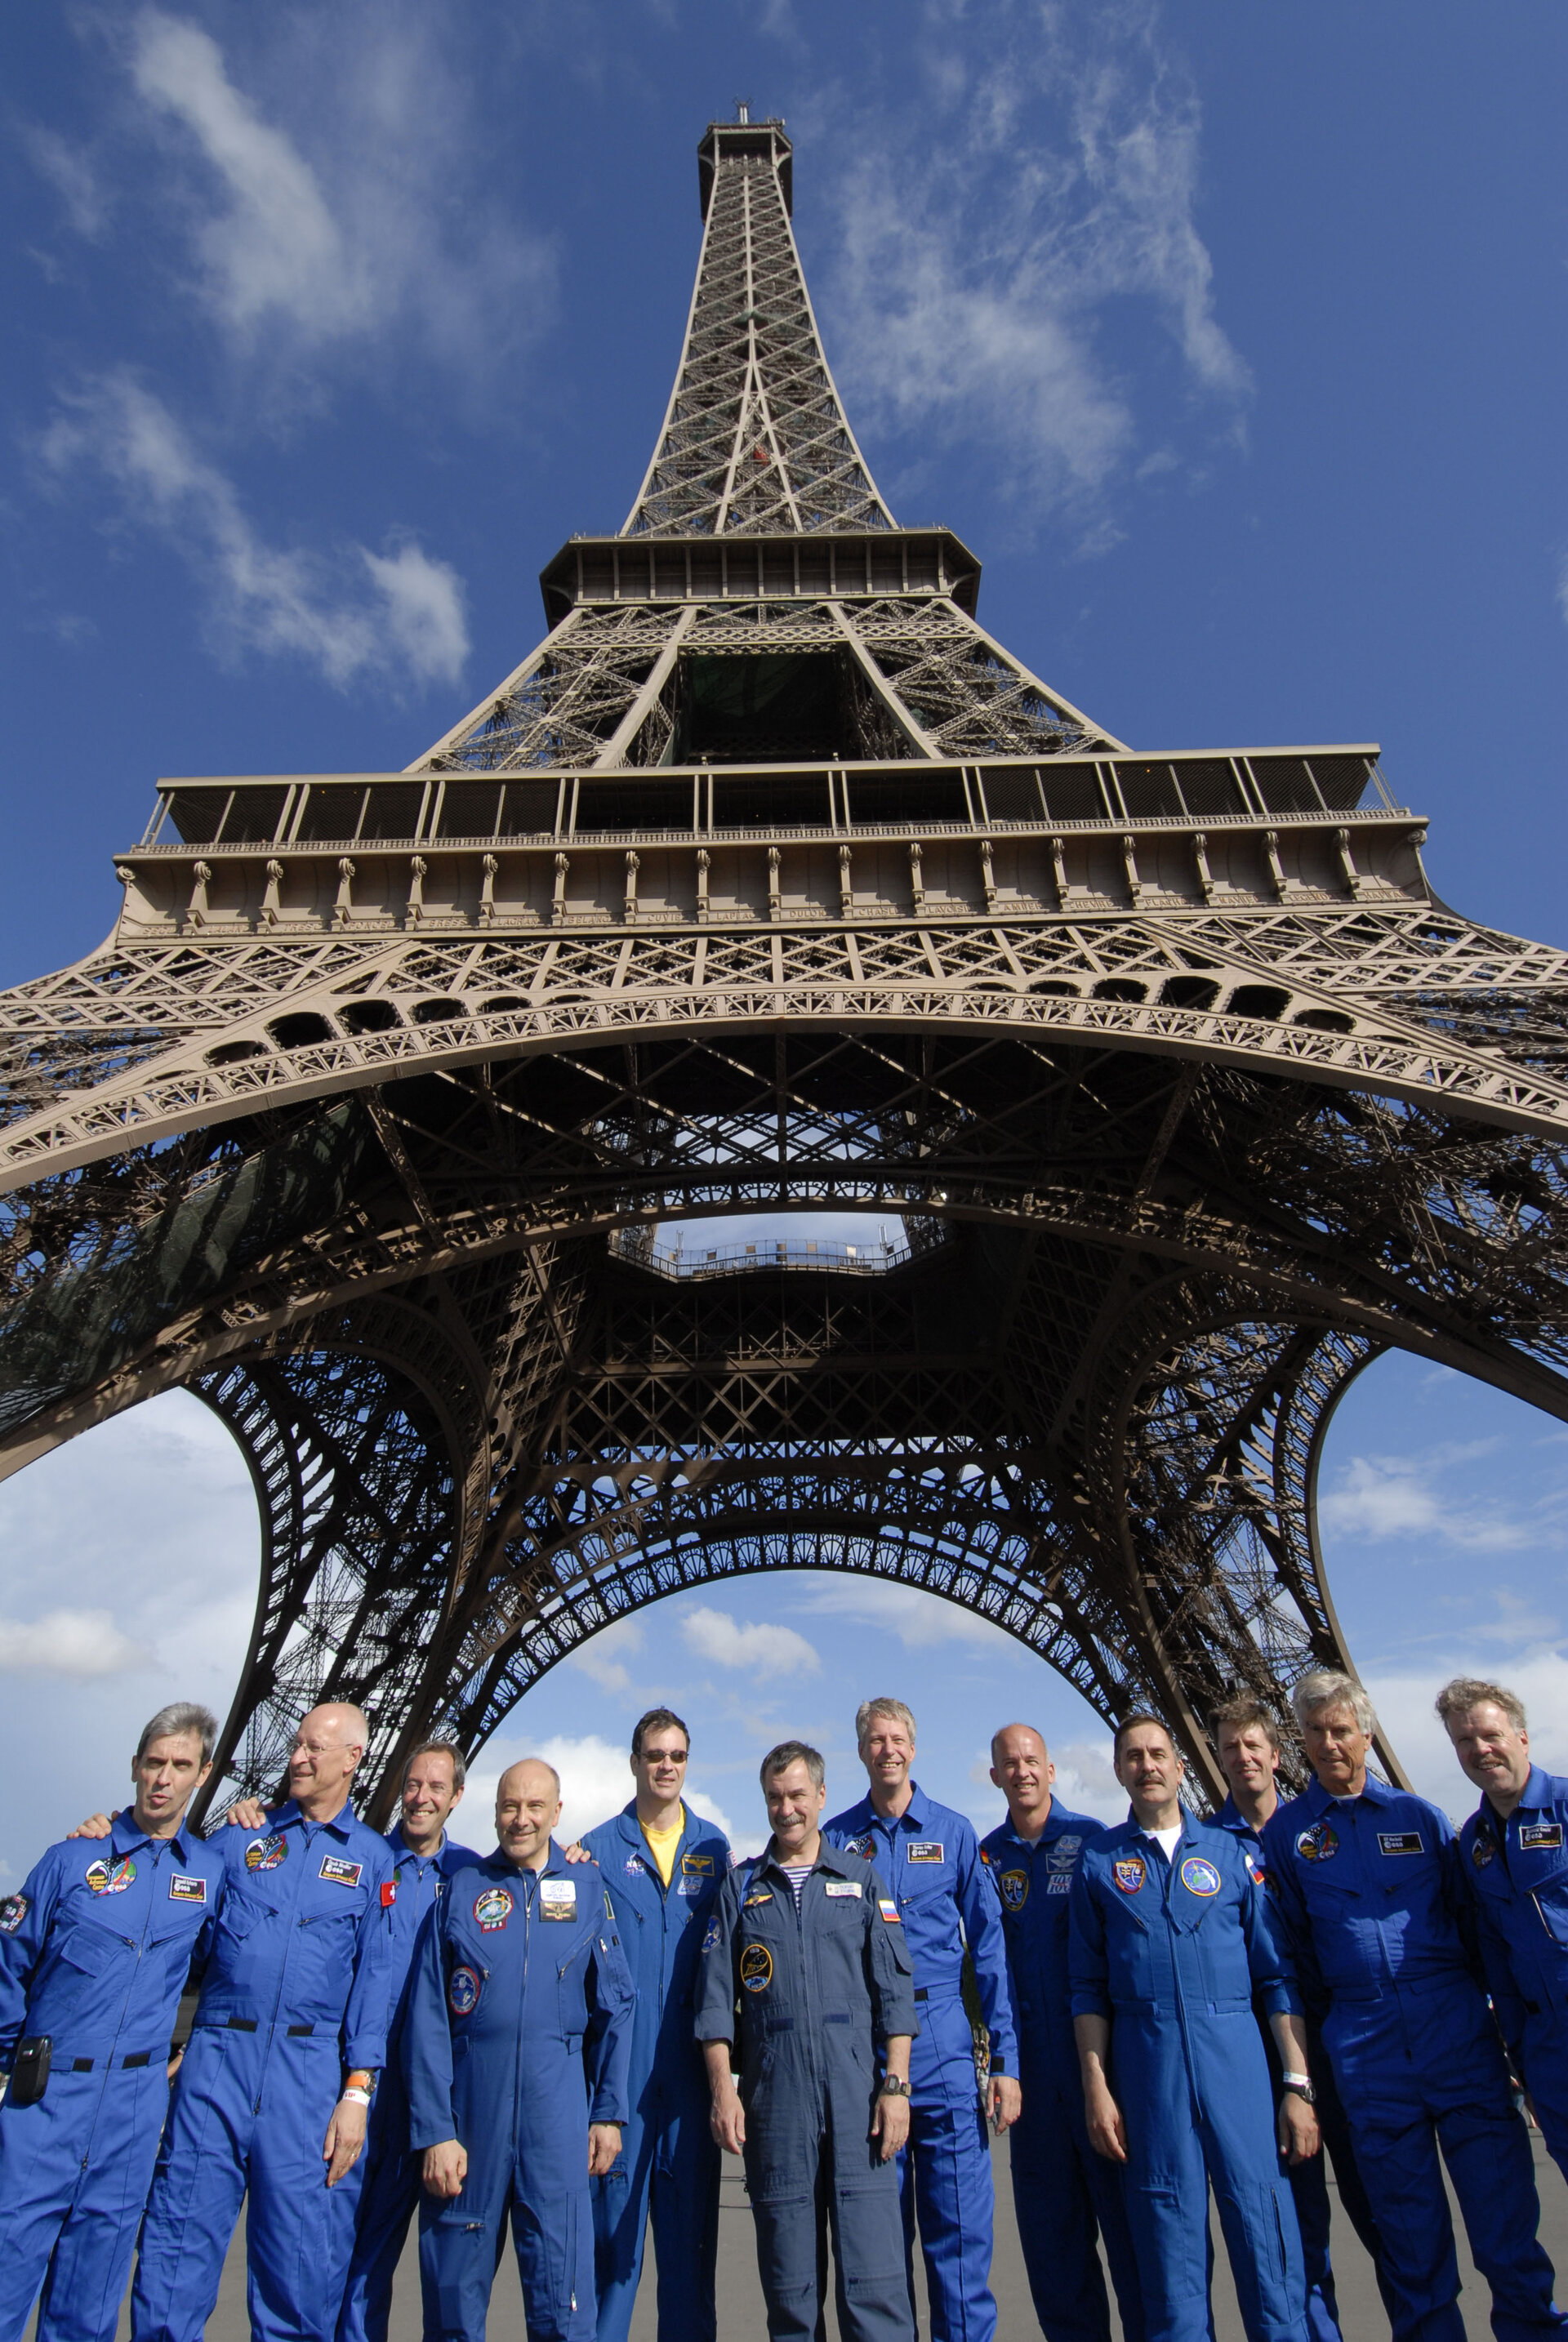 European astronaut corps together with Russian and American colleagues